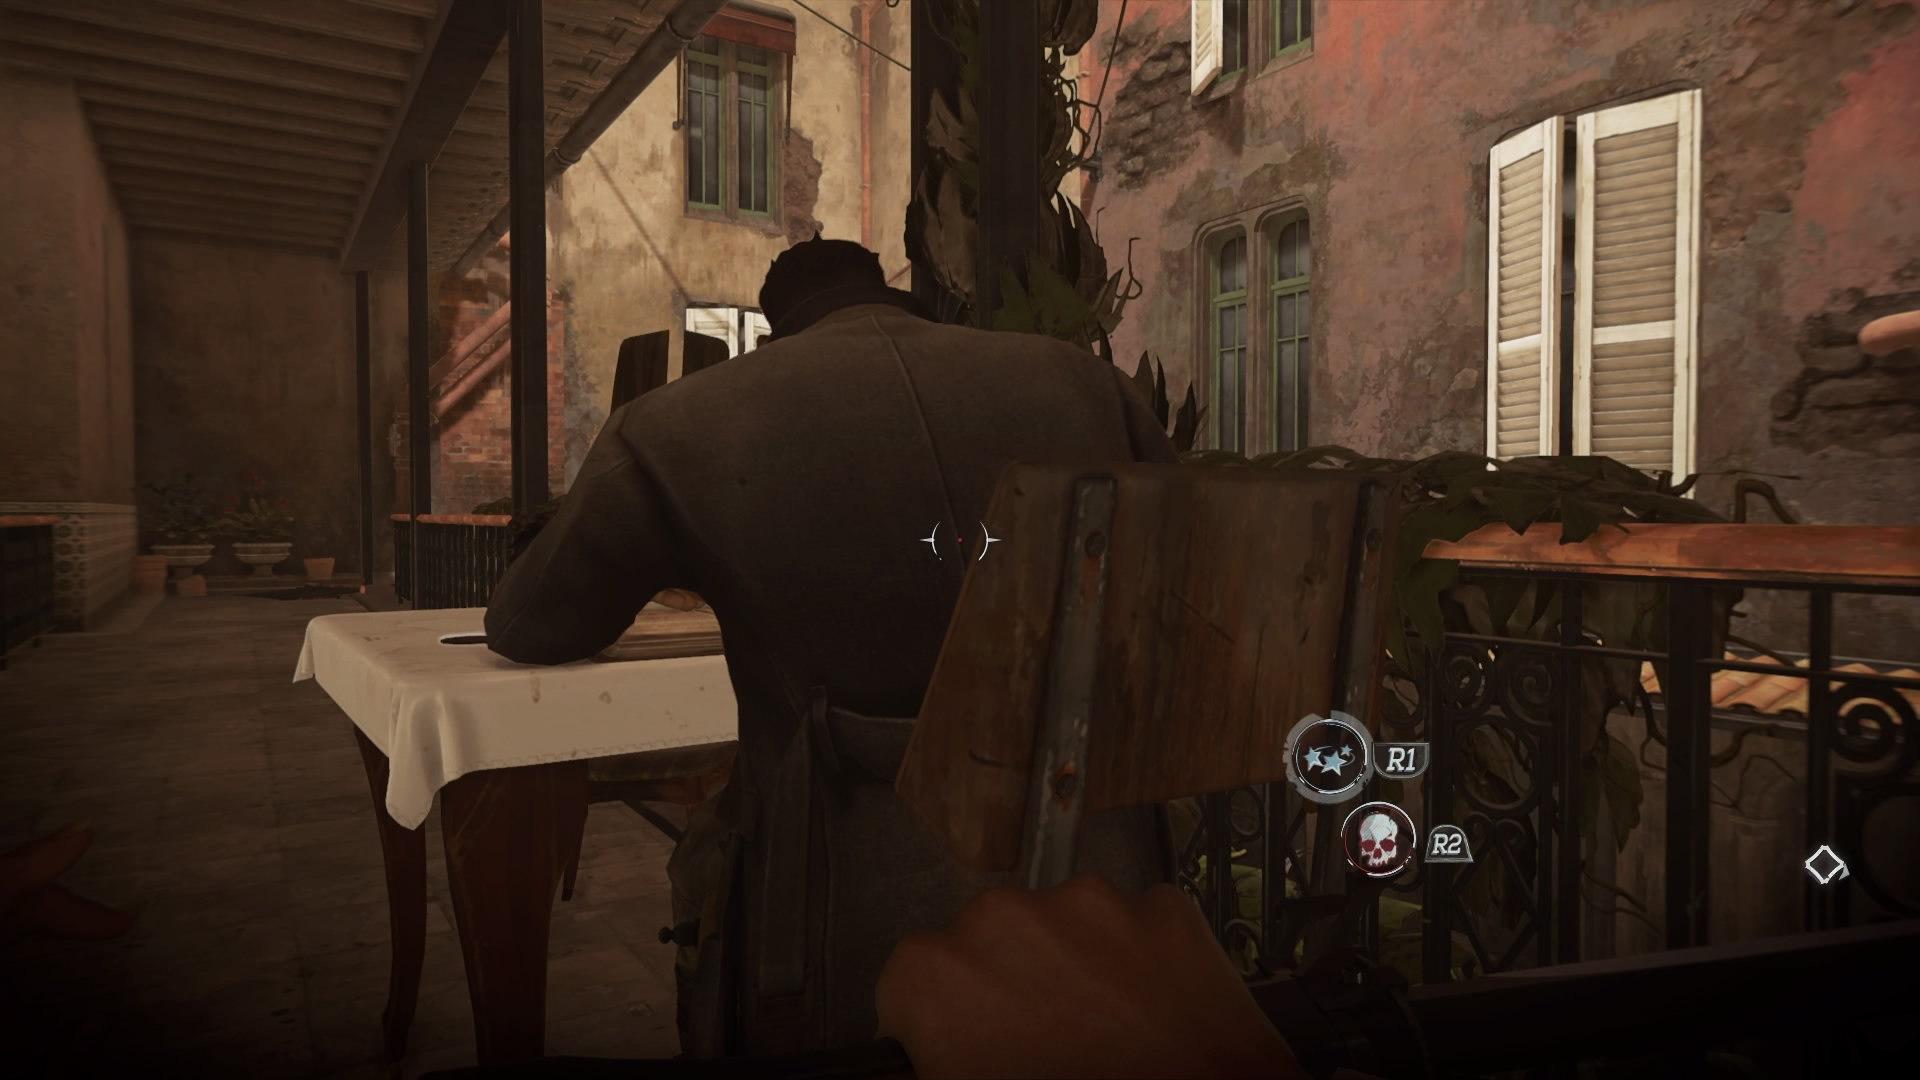 Escape The Bathroom One More Level dishonored 2 walkthrough level 6: dust district - polygon